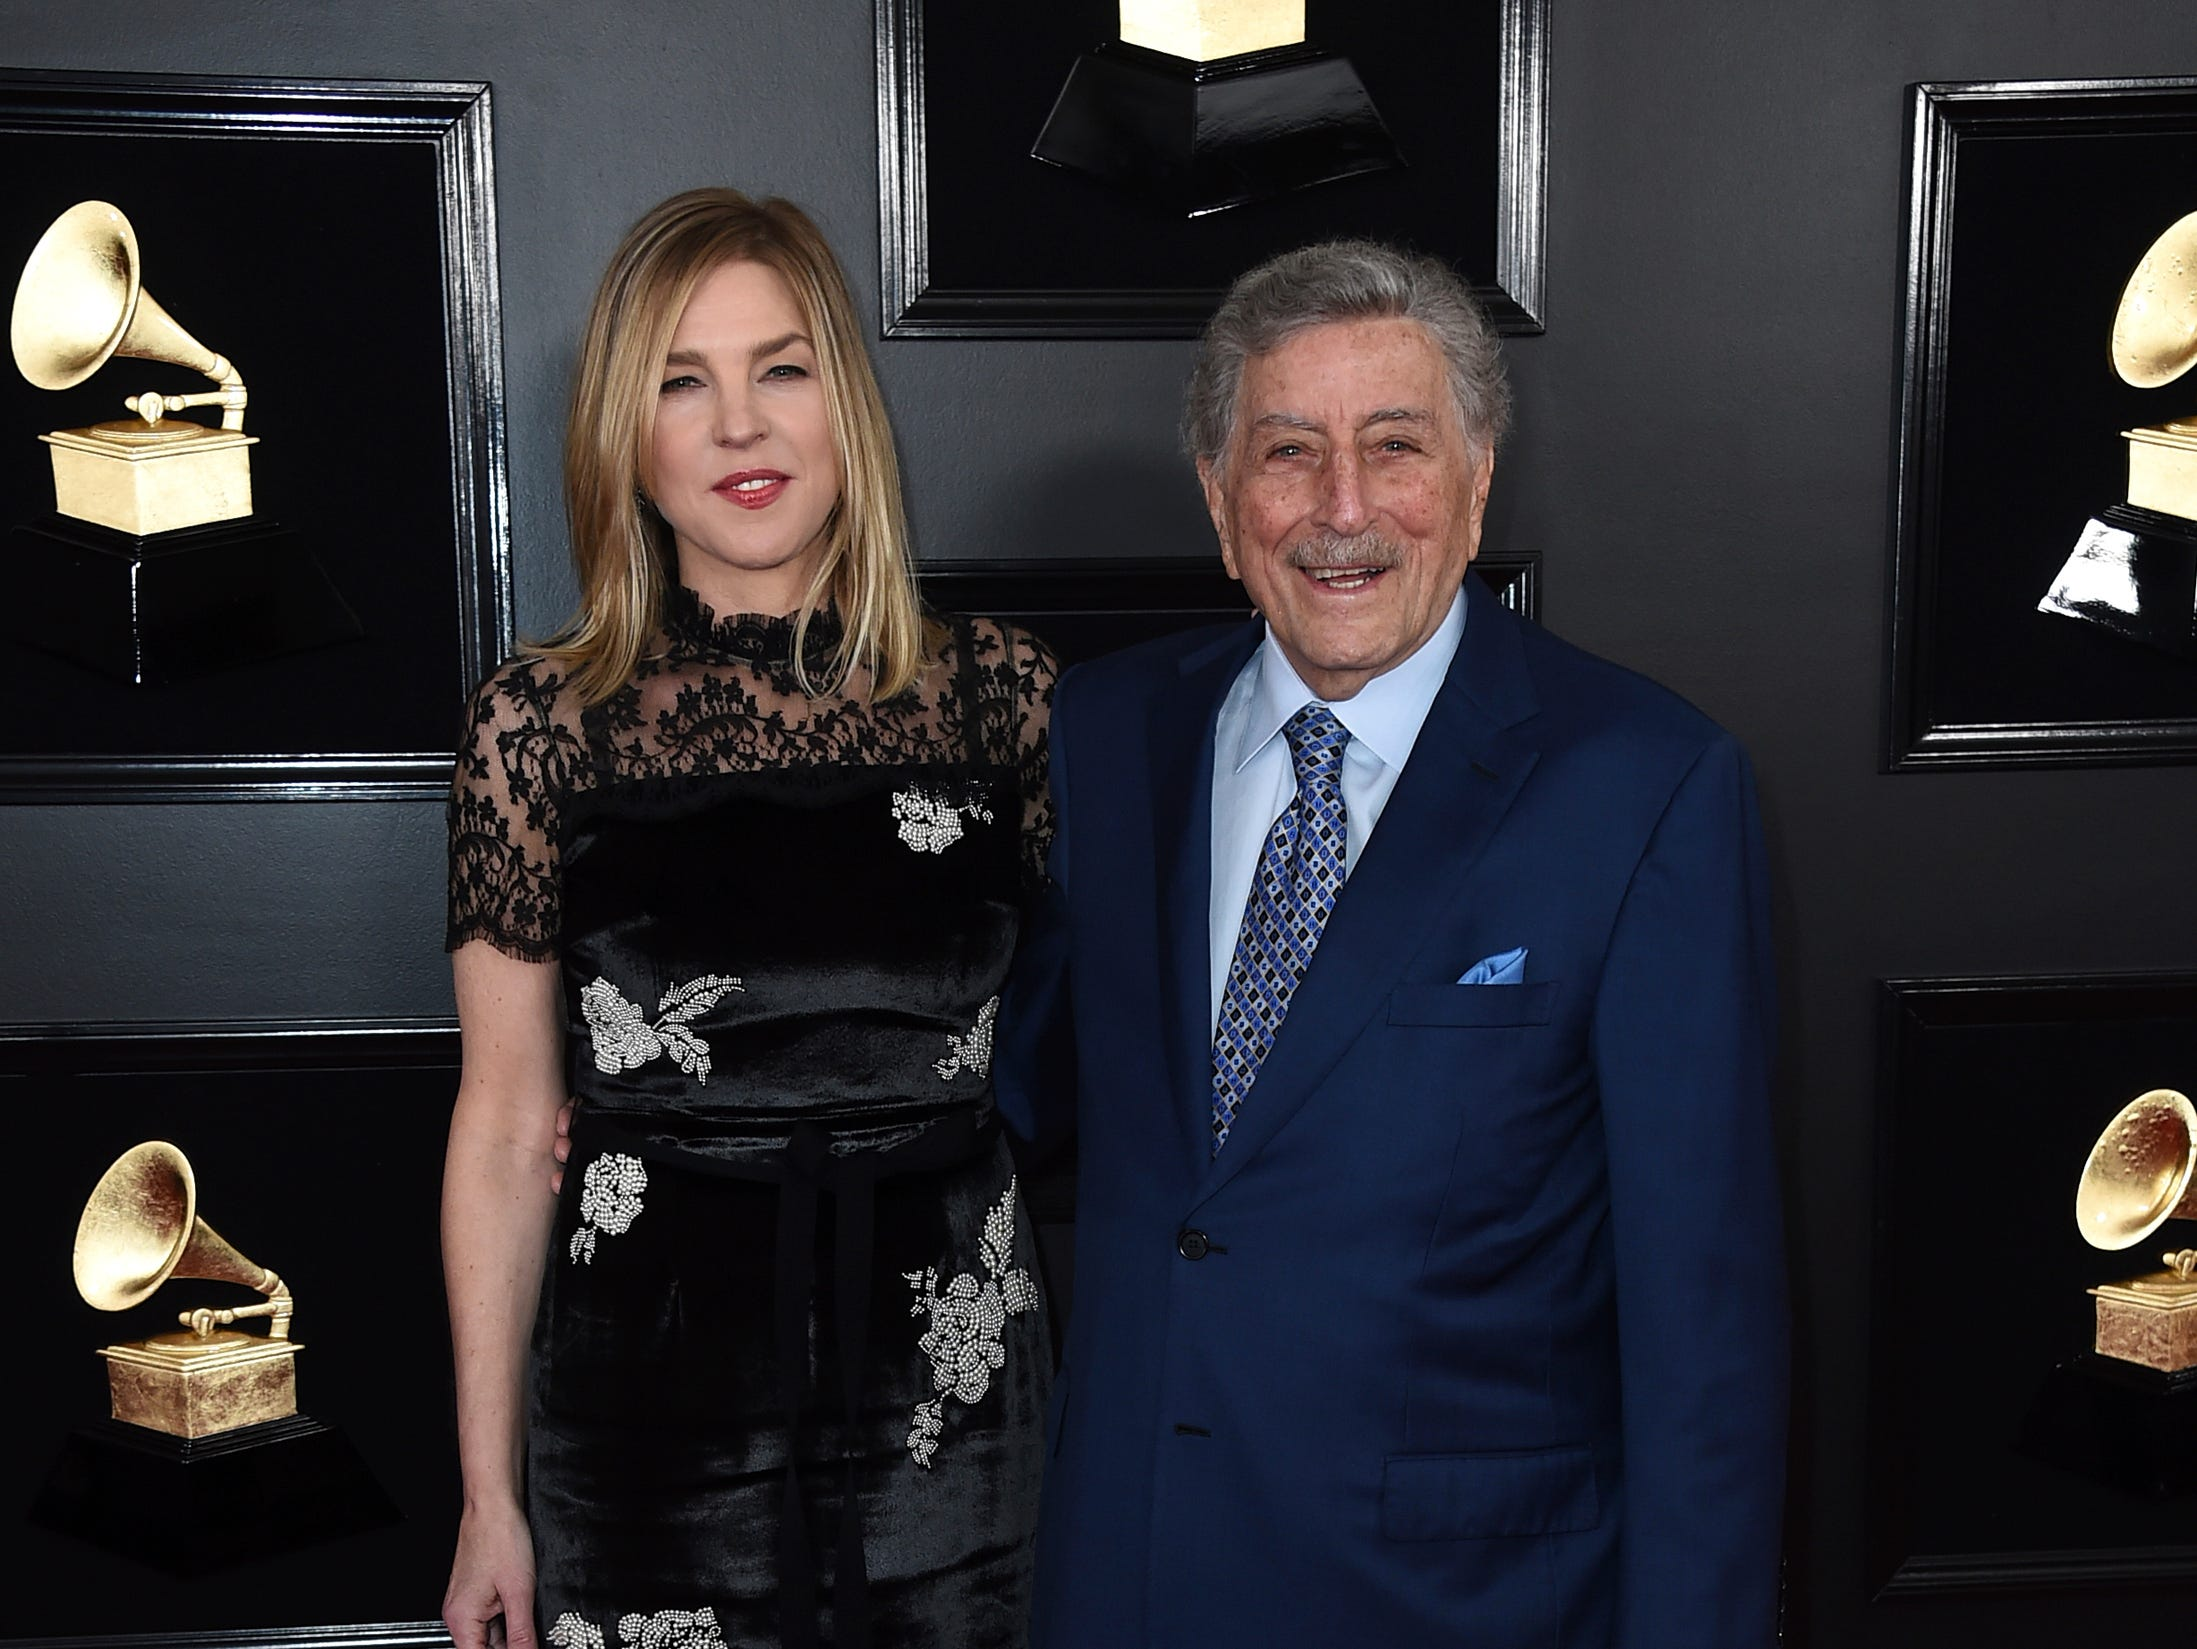 Diana Krall, left, and Tony Bennett arrive at the 61st annual Grammy Awards.